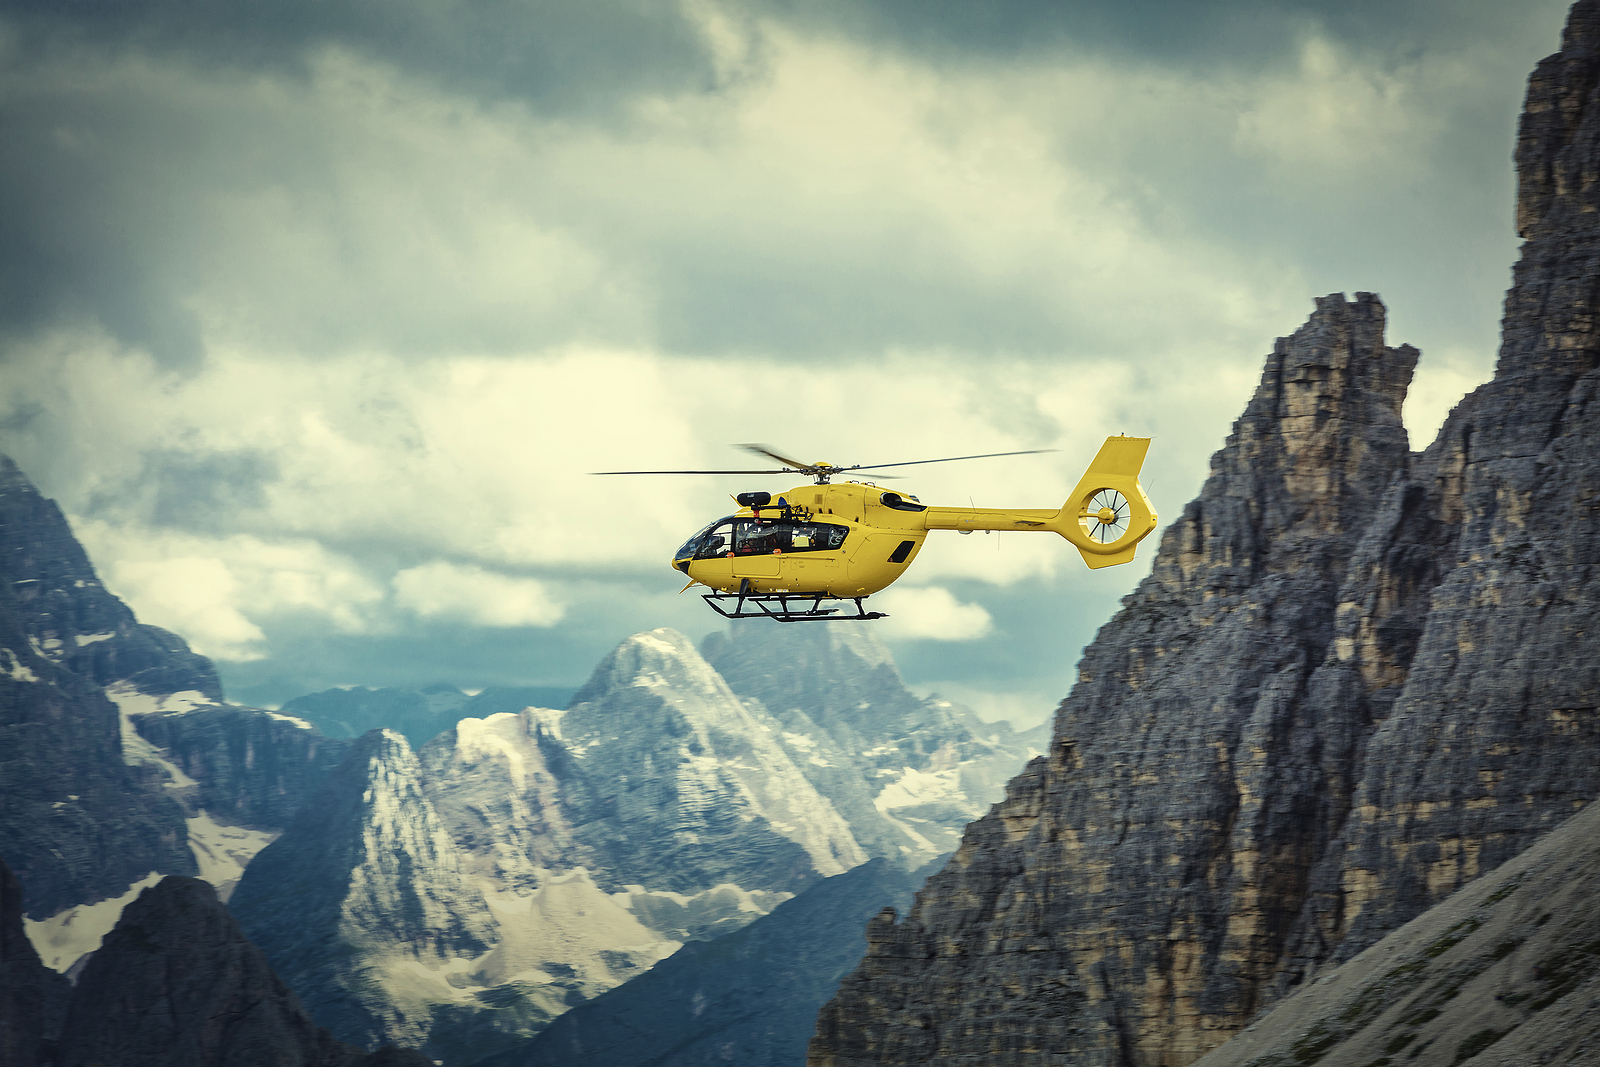 Panoramic Flight Over The Mountains. Air Transport. Helicopter F